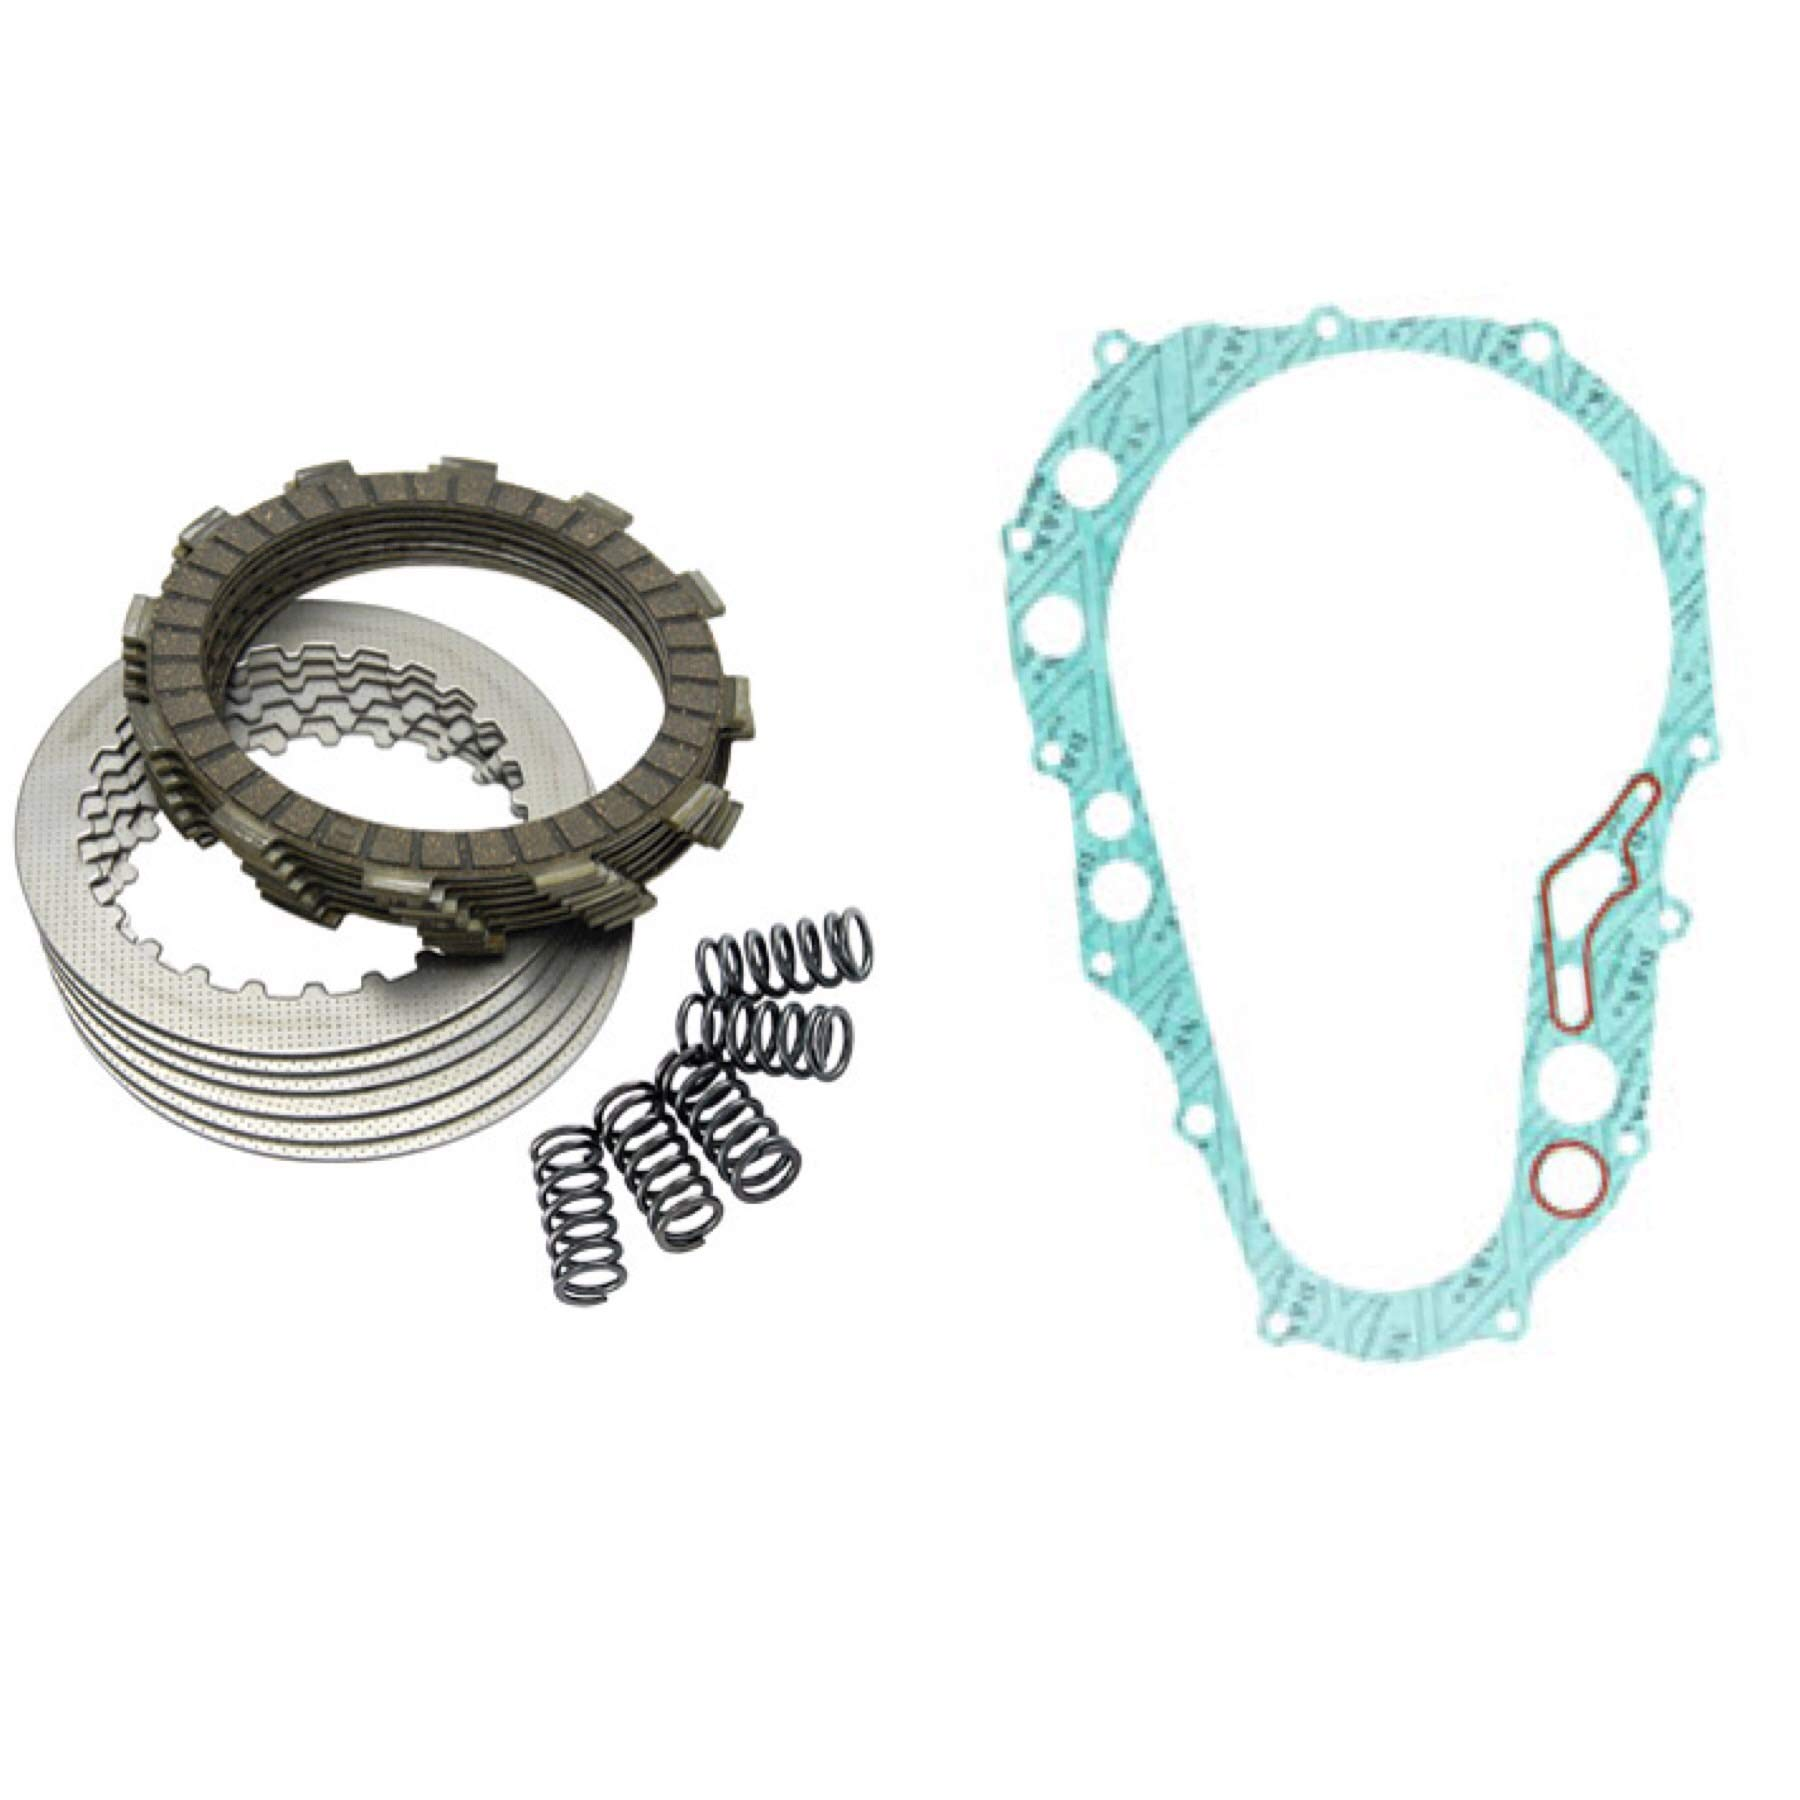 Tusk Heavy Duty Clutch Kit with Springs and Clutch Cover Gasket - Fits: YAMAHA RAPTOR 660 2001-2005 by -Tusk-